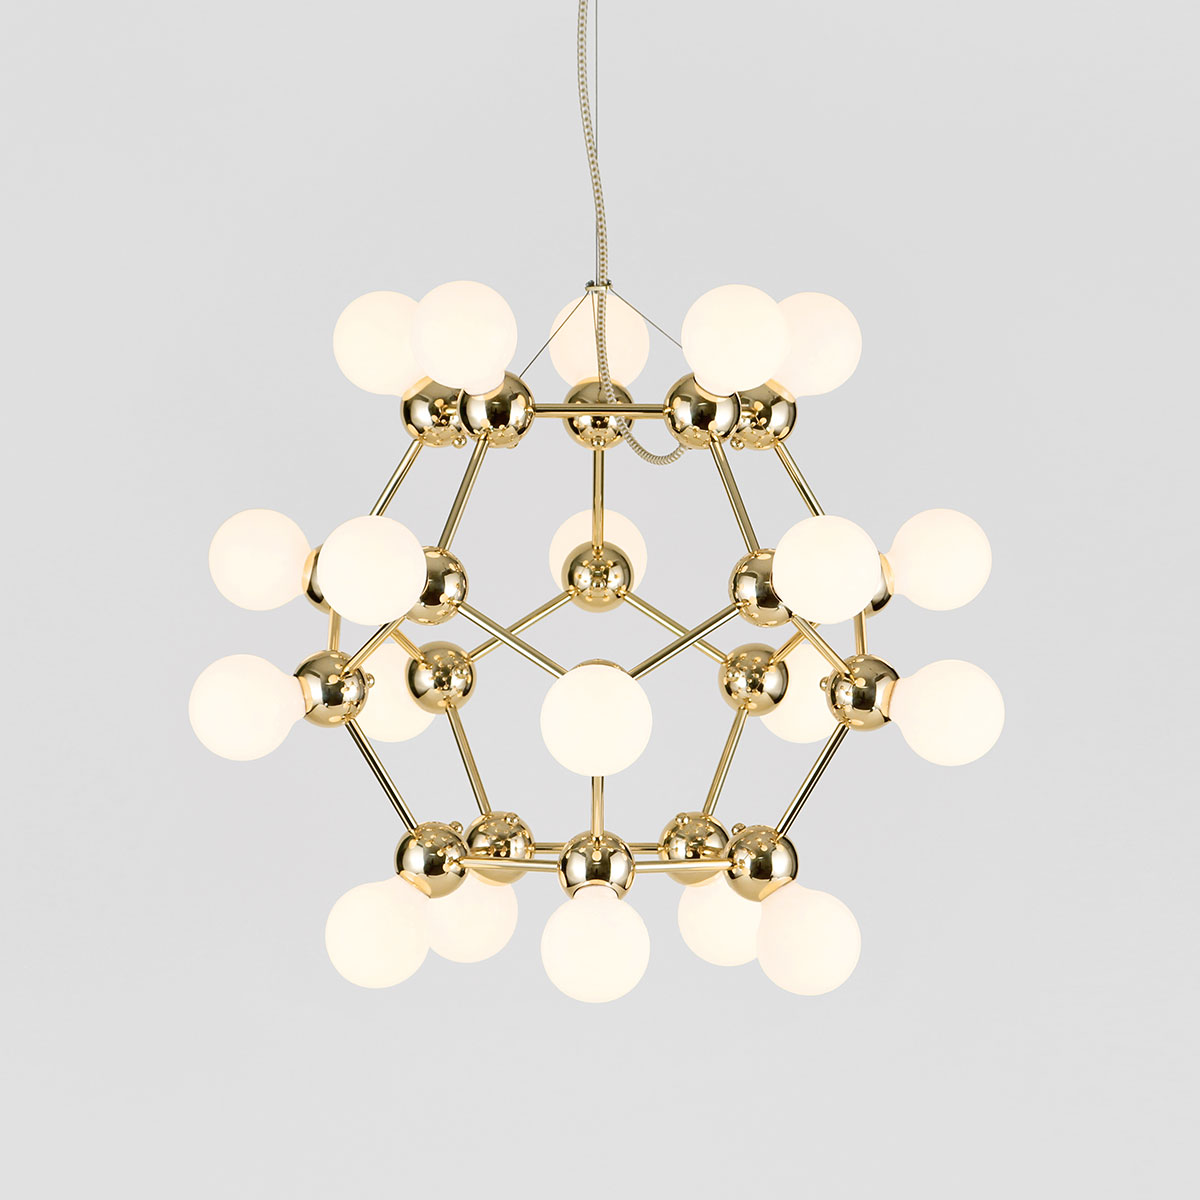 LINA 20-LIGHT SM CHANDELIER    See Lina series